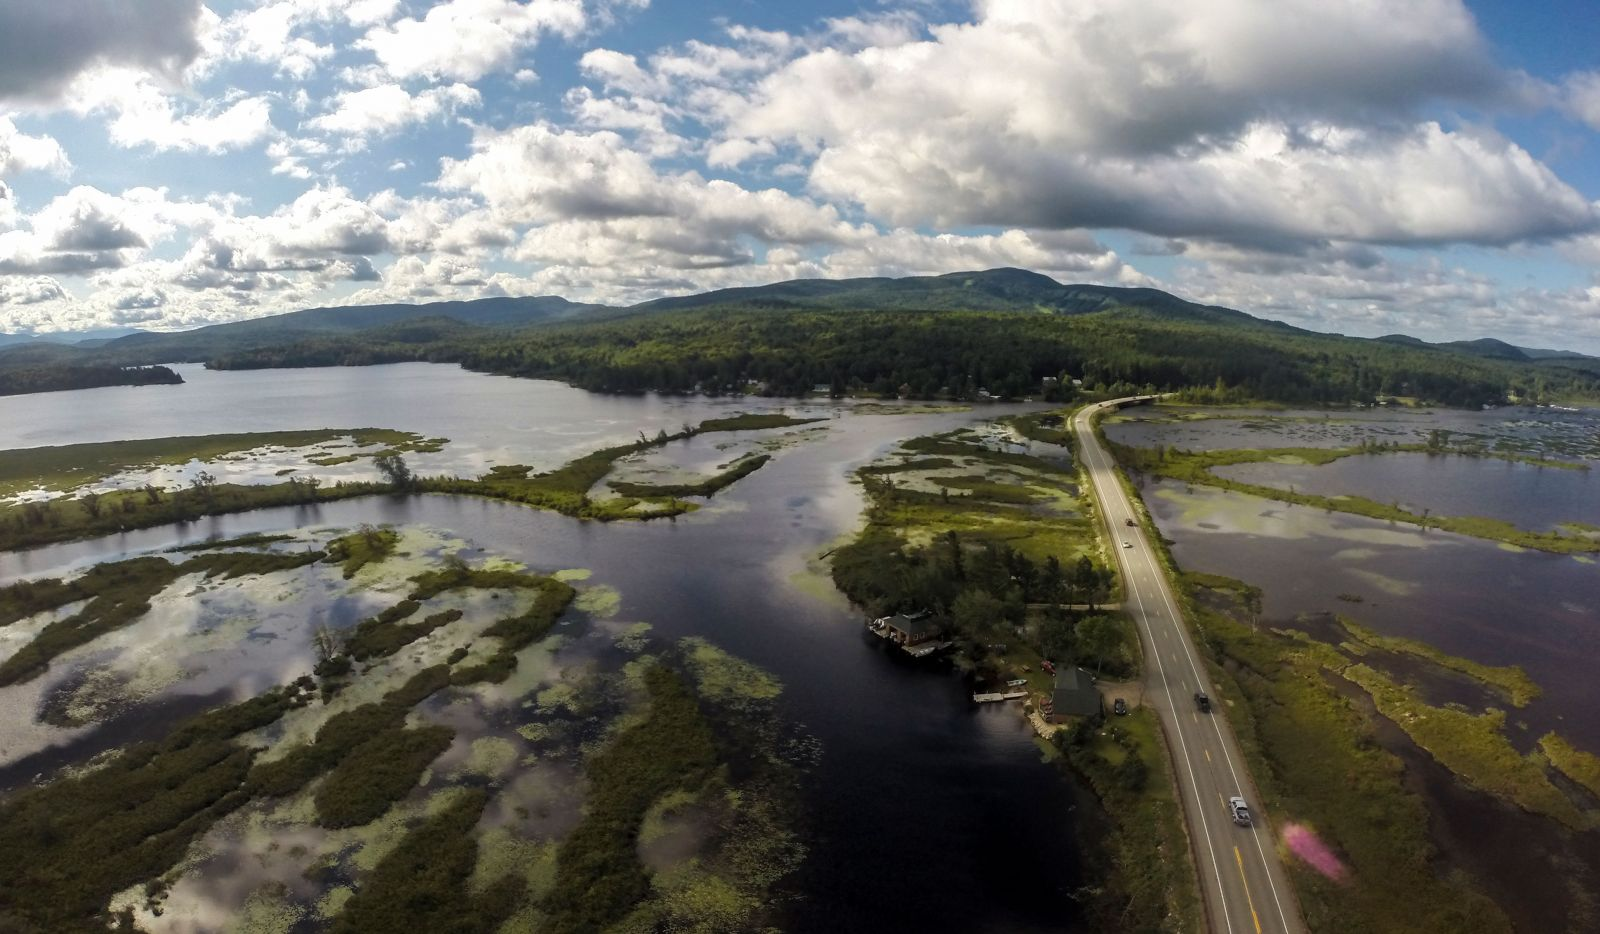 A birds eye view of Big Tupper Lake, Moody Marsh & Simon Pond.